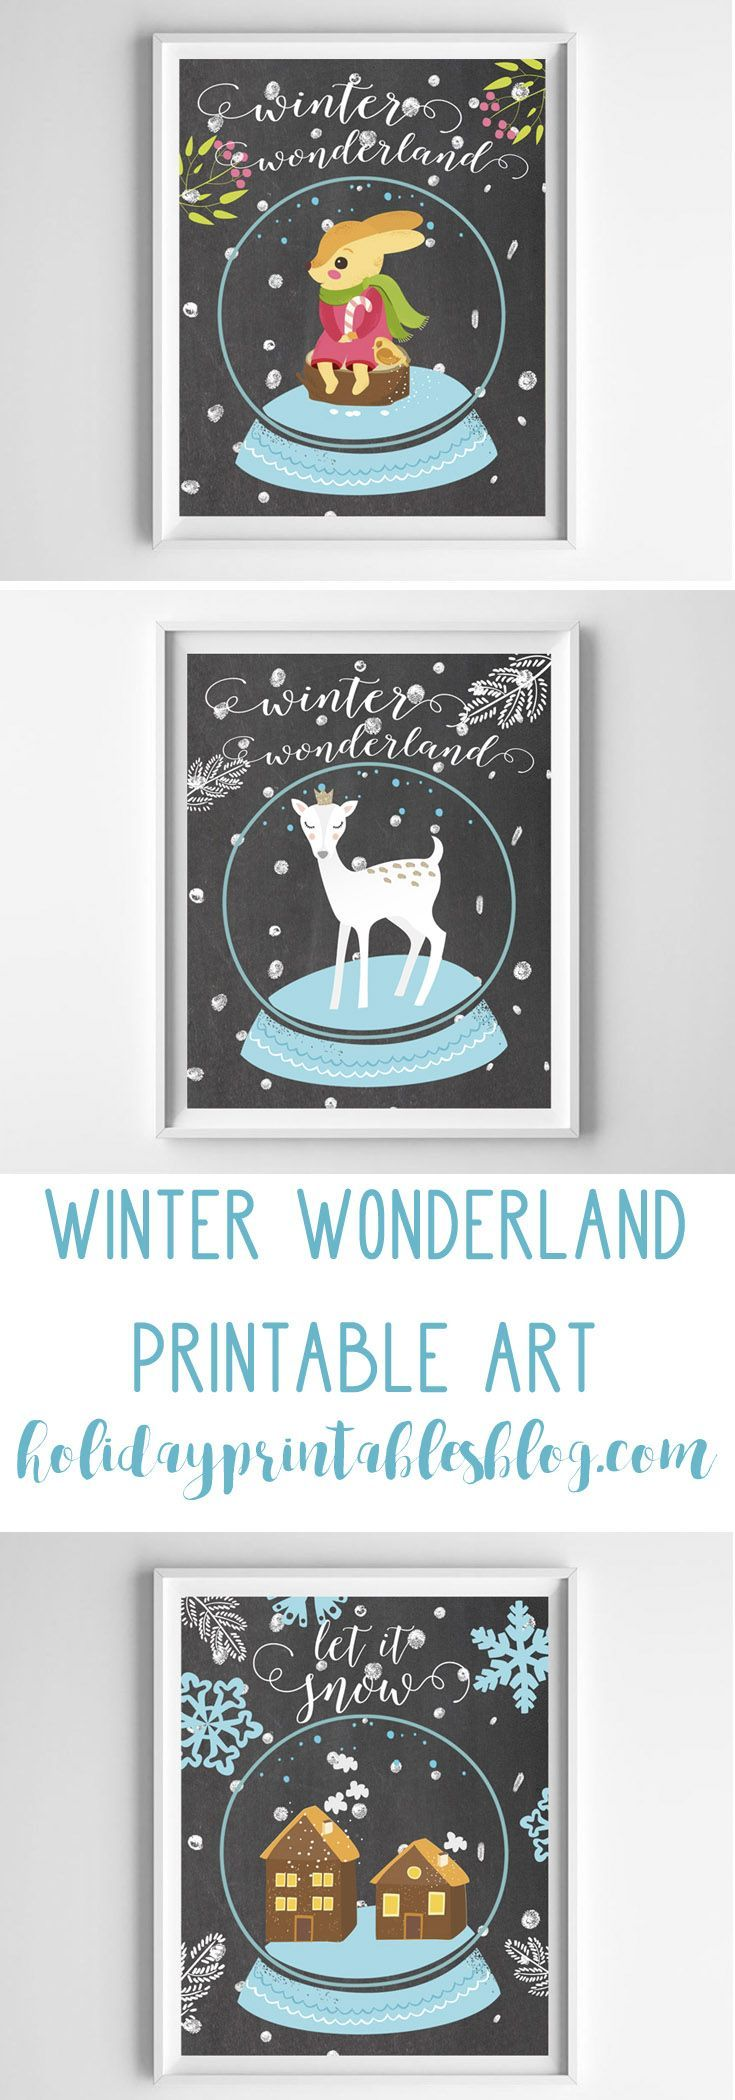 Pronoun Worksheets Free  Best Images About Printables For Kids On Pinterest  Christmas  Worksheet Present Perfect with English Worksheets For Grade 2 Comprehension Excel Winter Printable Art  Winter Wonderland  Snow Printables  Free Printable  Art  Whimsical  Maths Money Worksheets Word